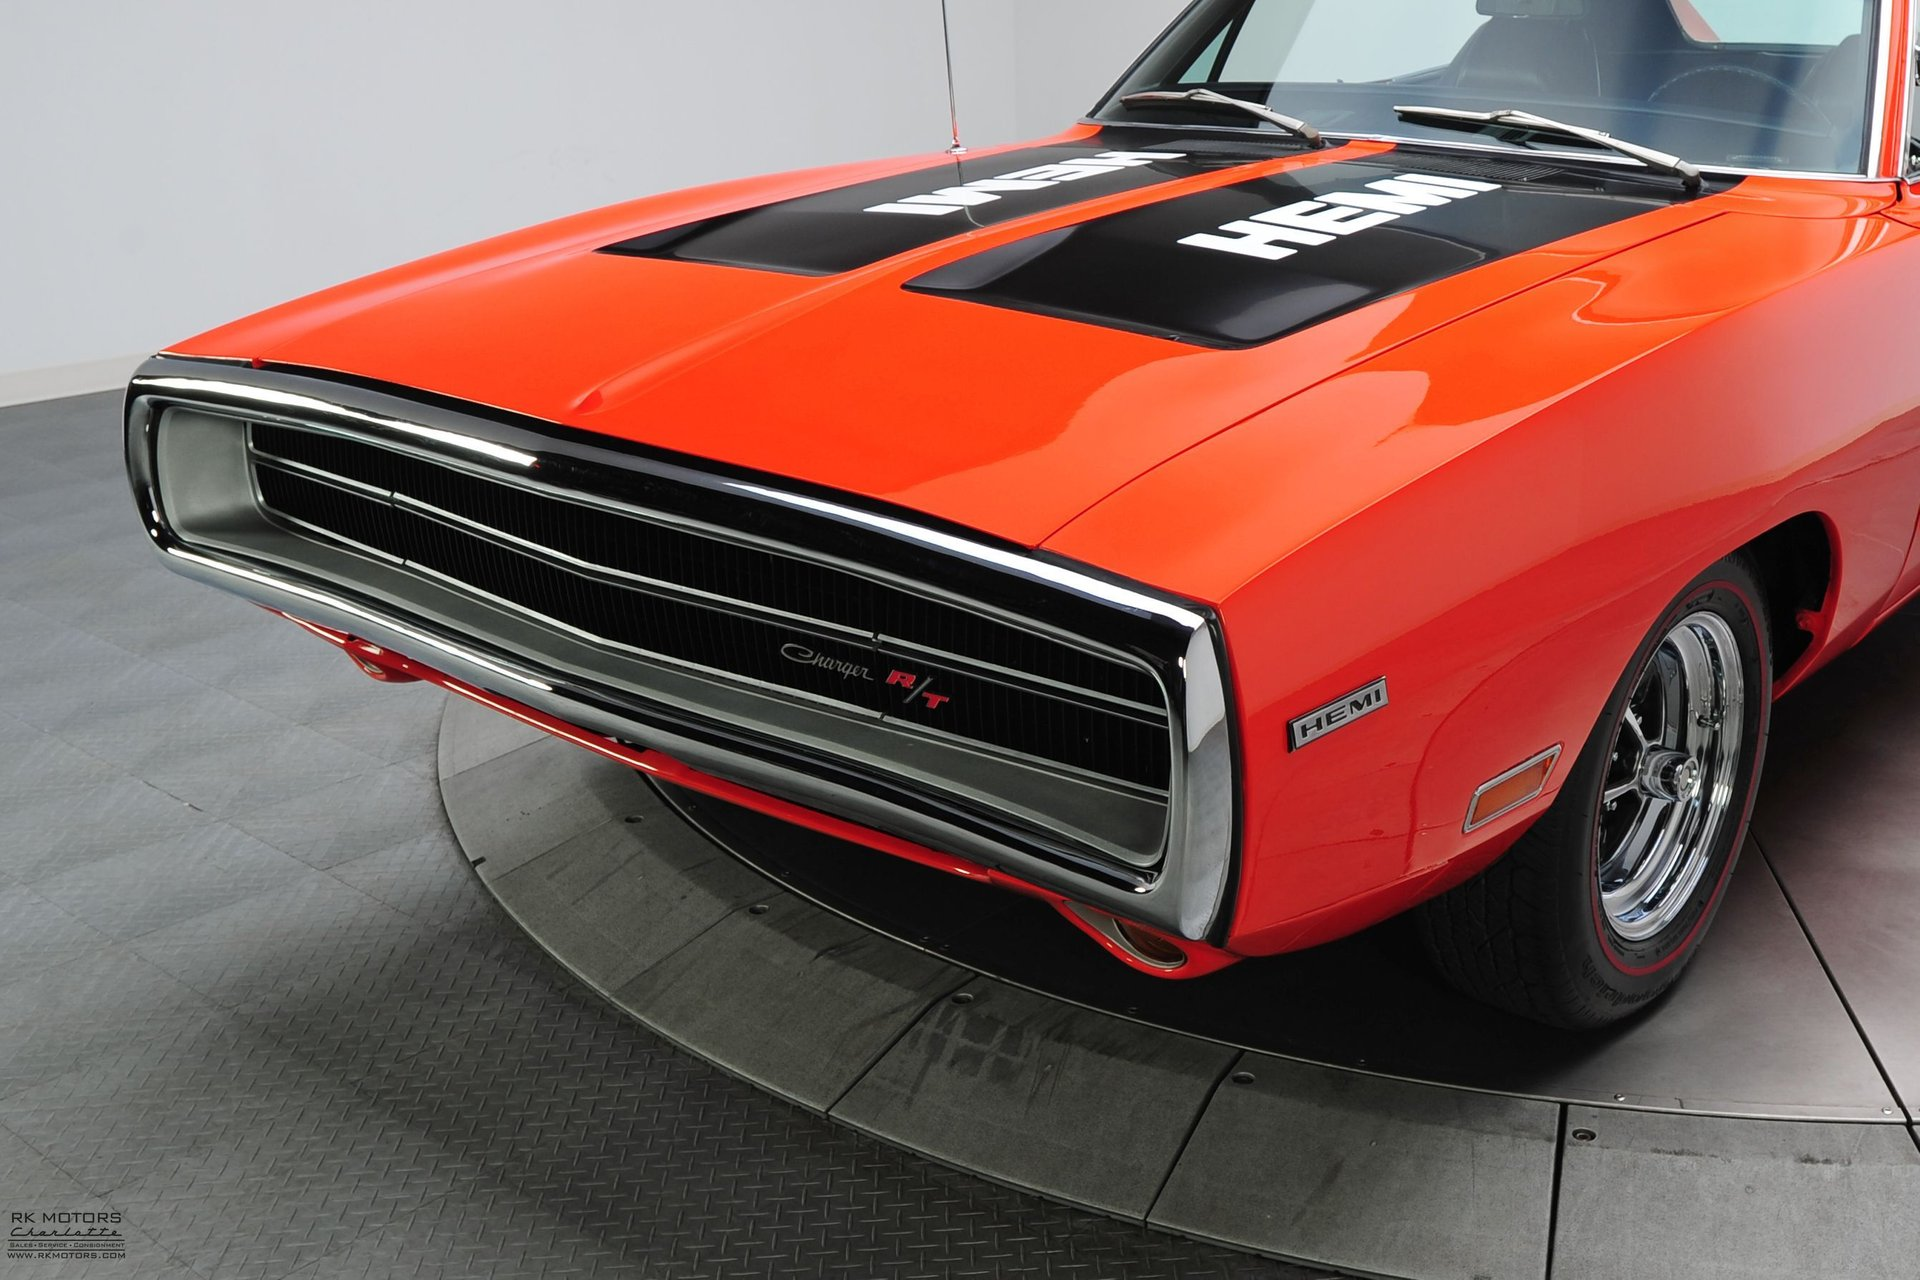 132956 1970 Dodge Charger Rk Motors Classic Cars For Sale